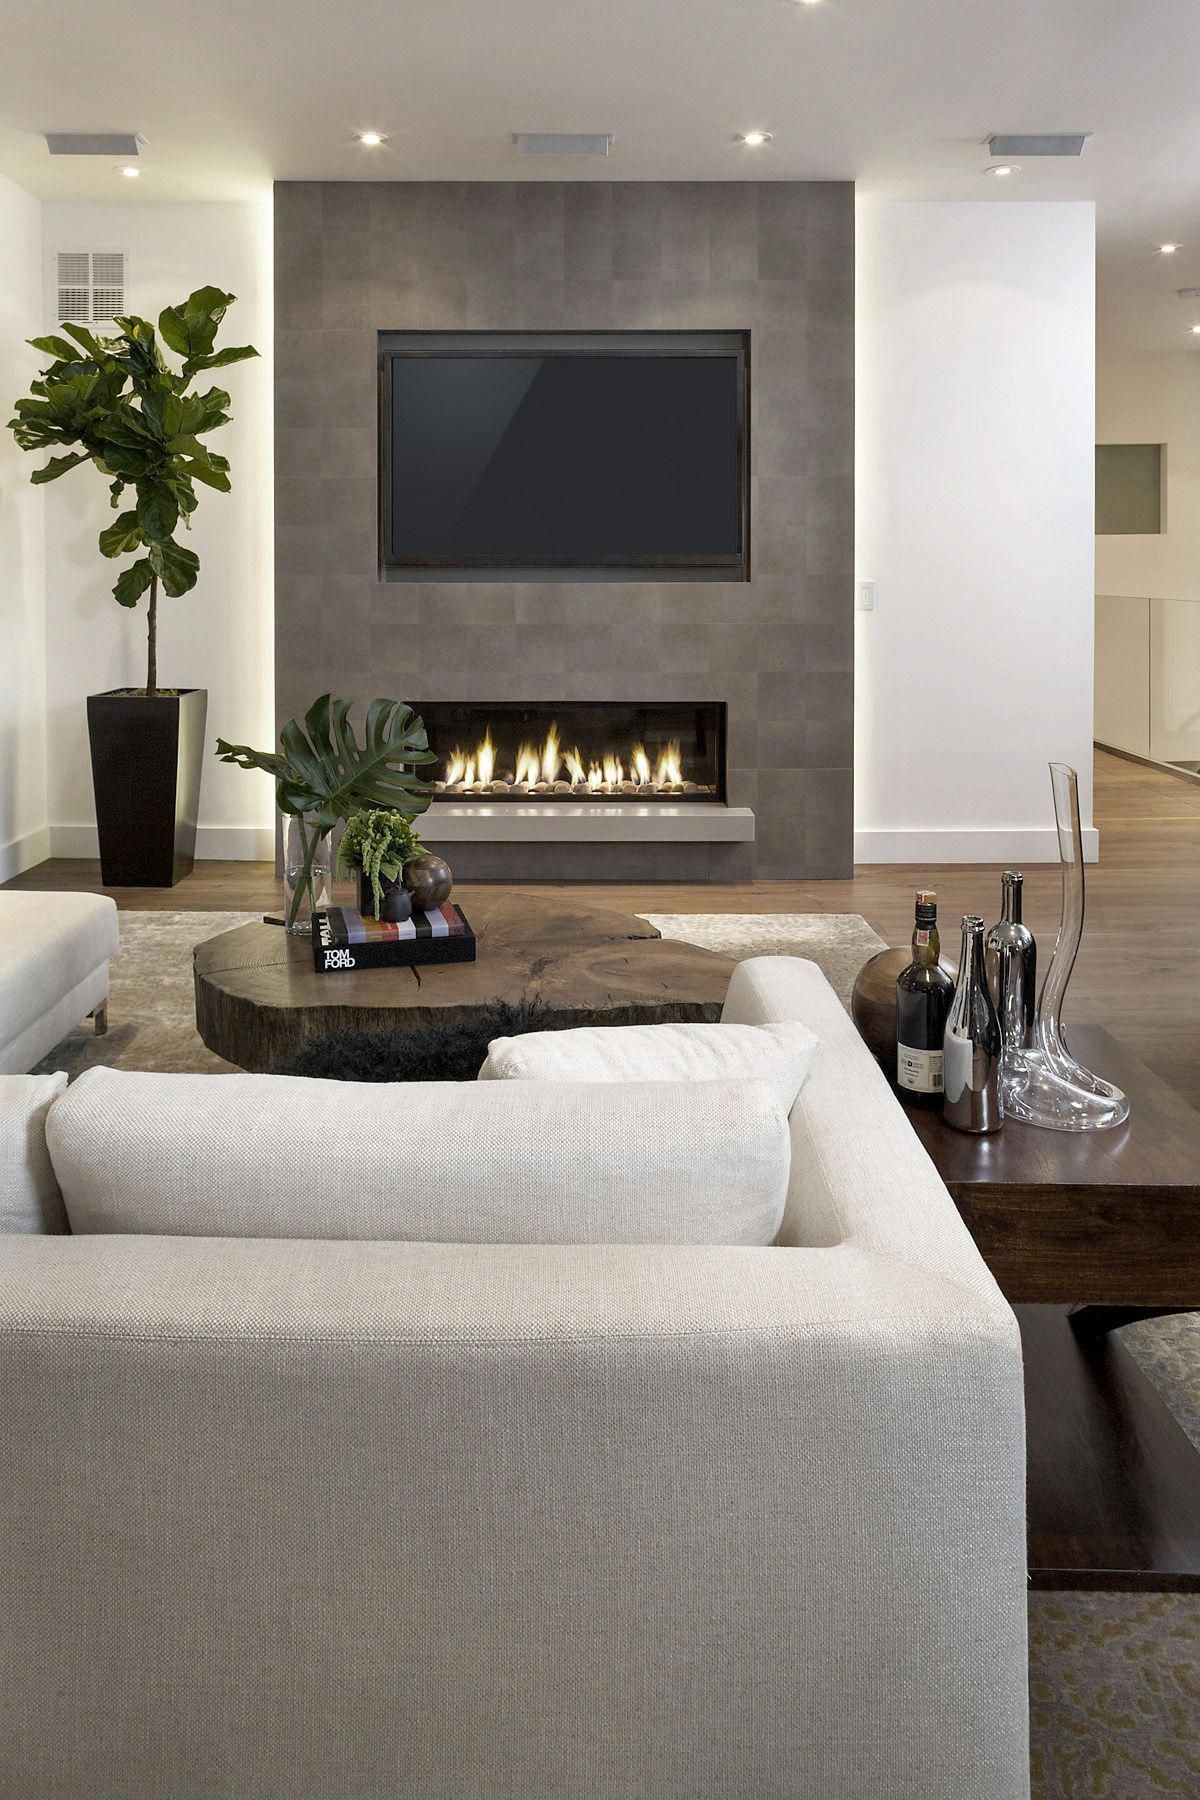 Tv Room Is A Place Of Entertainment In Your House You Can Share The Fun And Sadness With Family And Fri Farm House Living Room Fireplace Design Home Fireplace